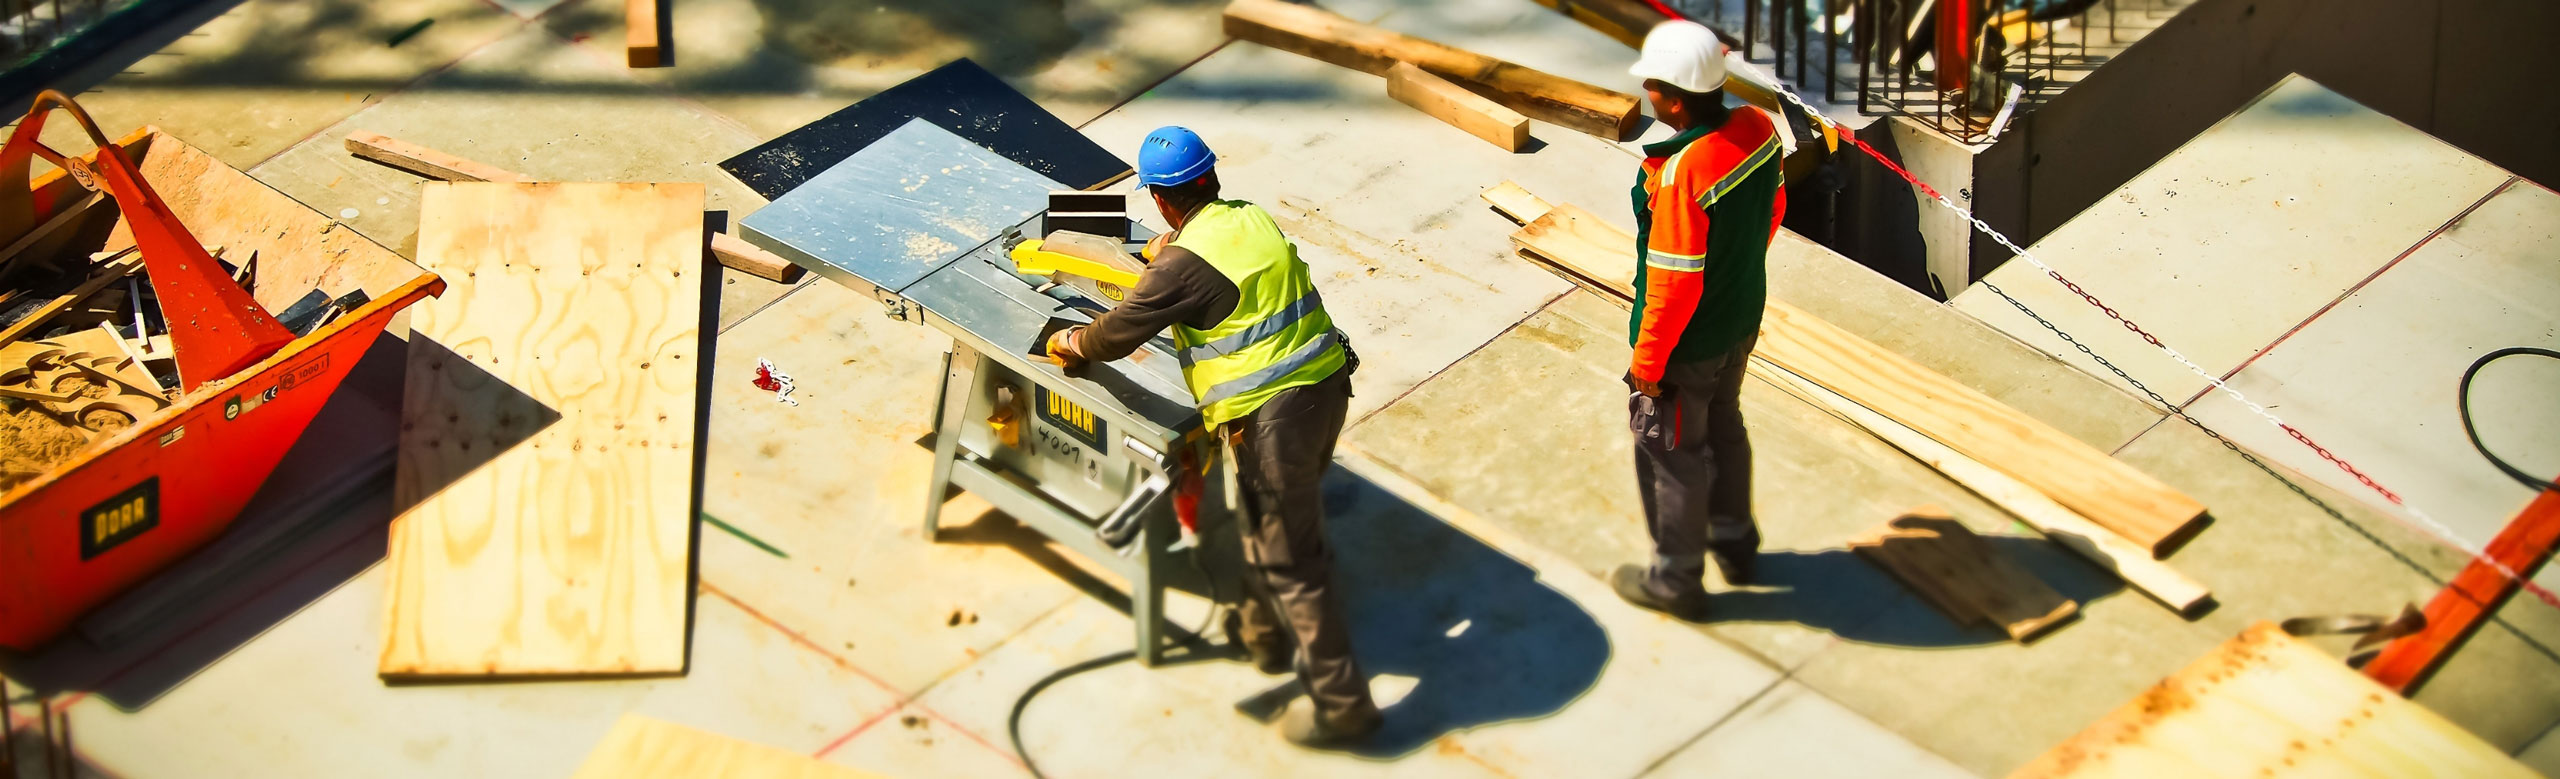 Building construction and maintenance services